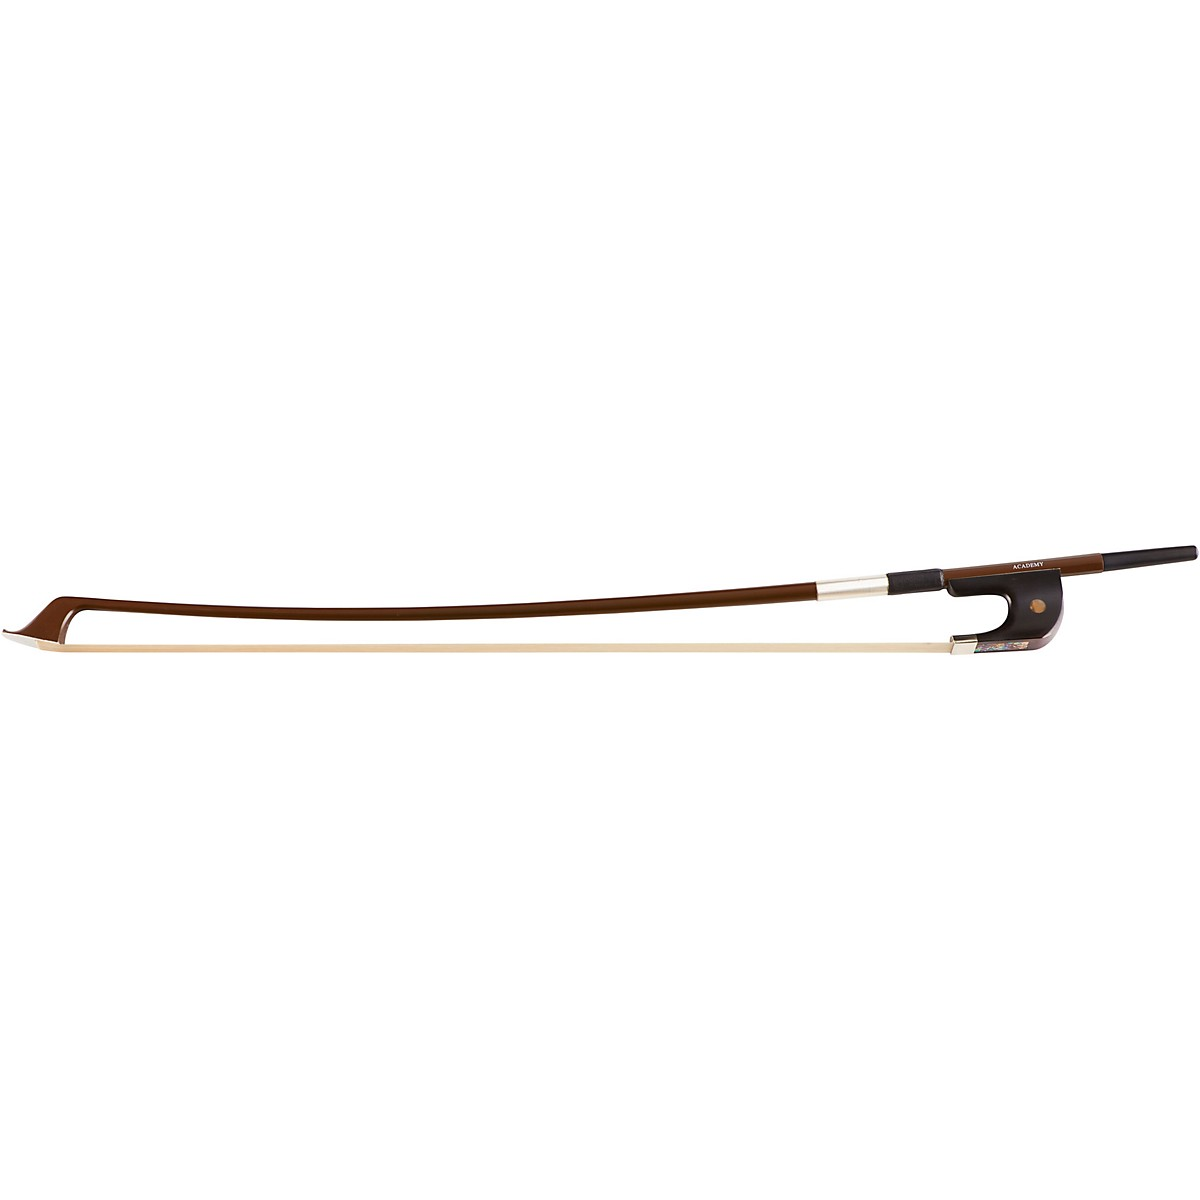 Premiere Conservatory Series Carbon Composite French Bass Bow